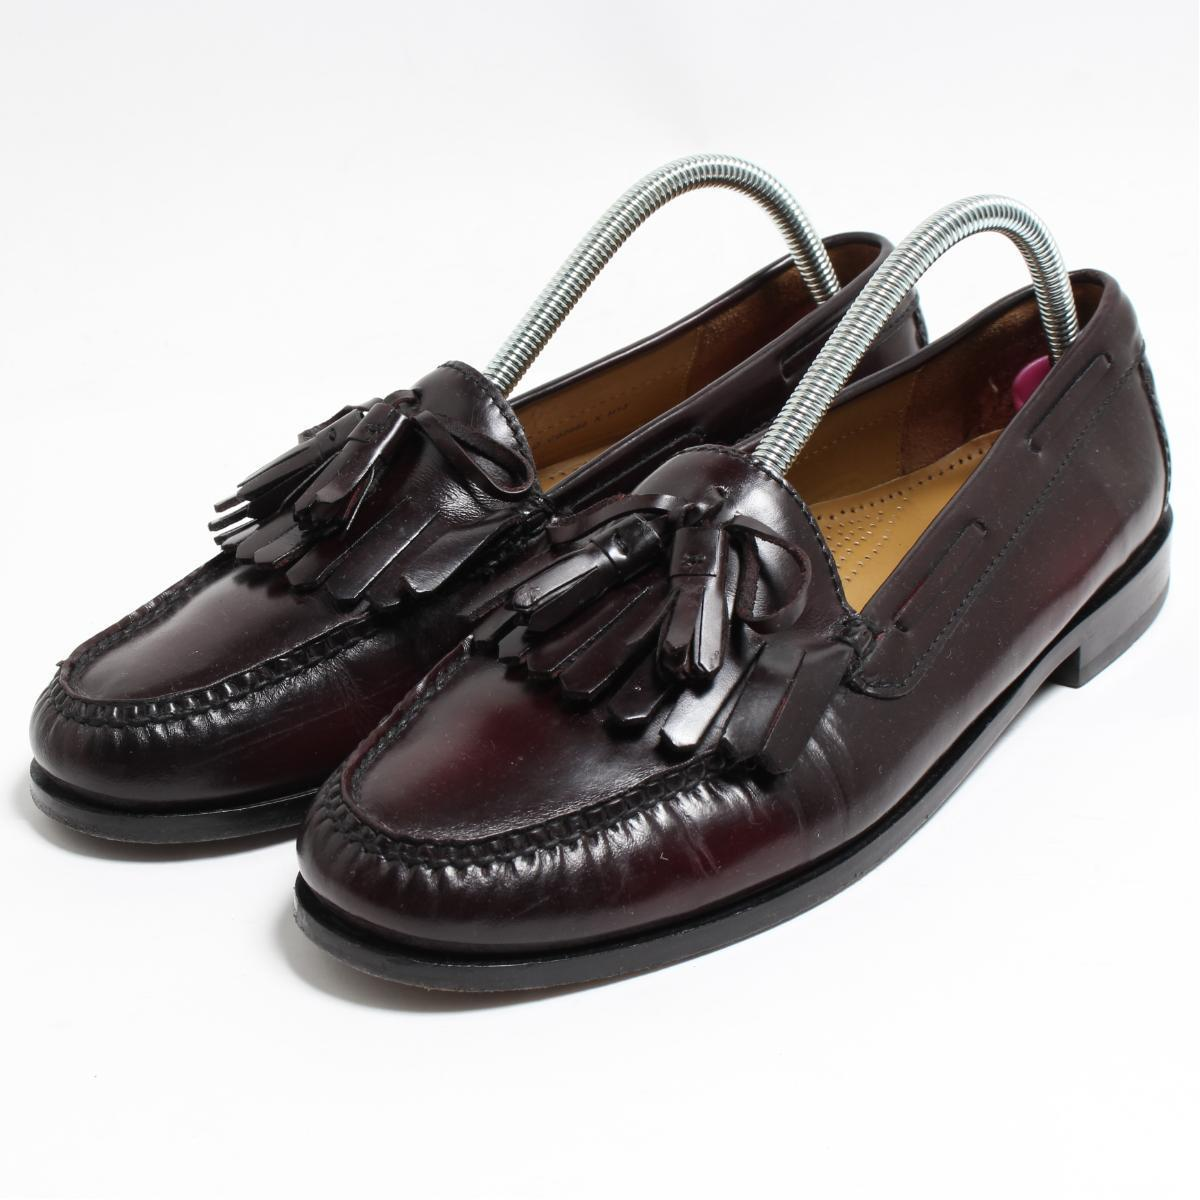 bb4b0c3678b VINTAGE CLOTHING JAM  Cole Haan COLEHAAN tassel loafer 9.5D men 27.5 ...